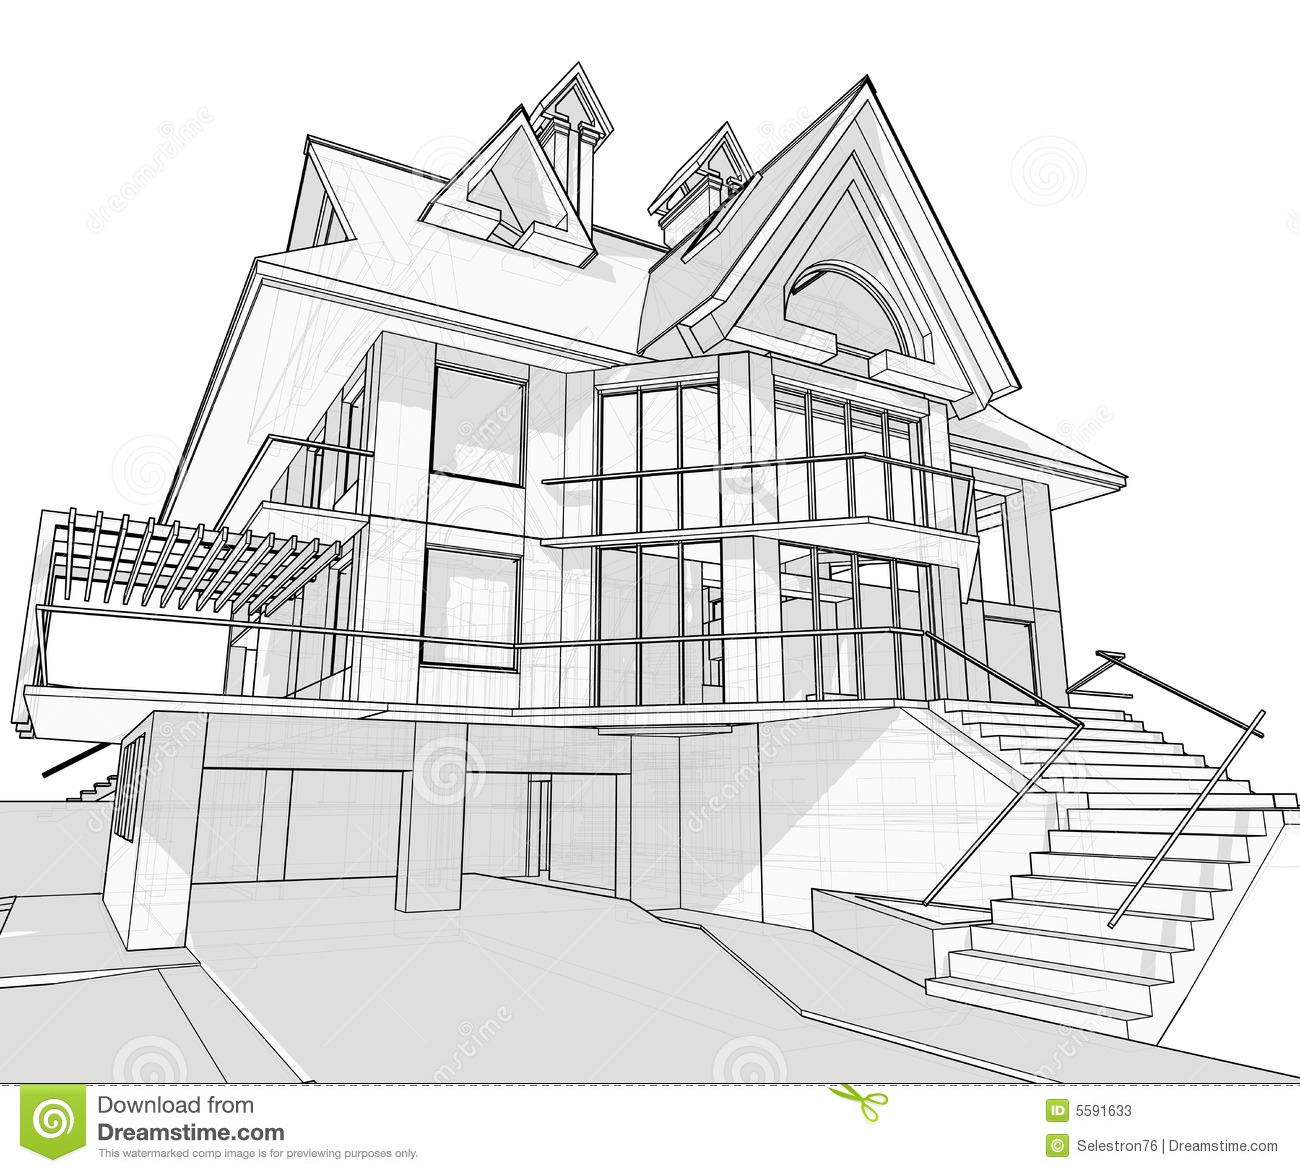 House architecture blueprint stock vector illustration for Architecture design blueprint